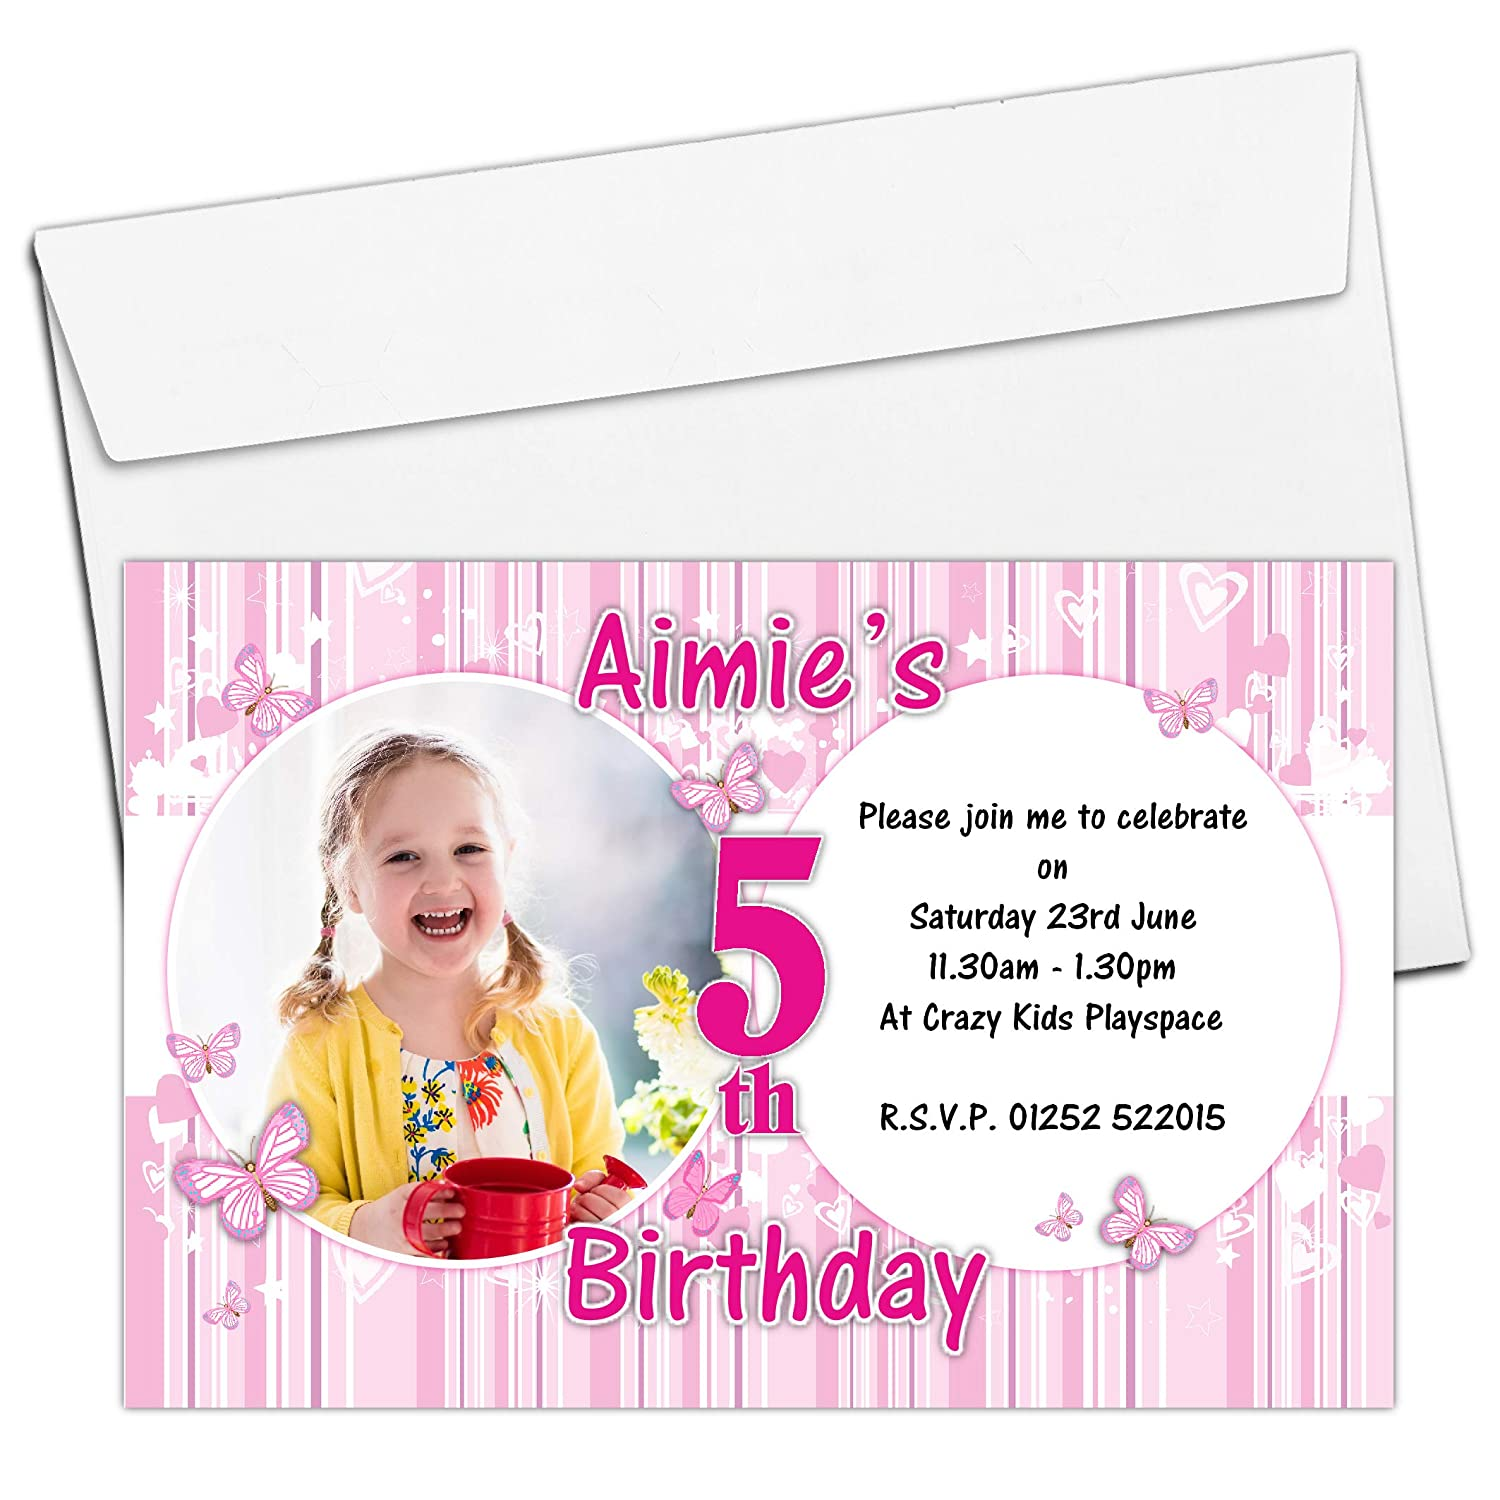 20 Personalised Trampoline Birthday Party Invitations Invites Boy or Girl Ref B61 4th 5th 6th 7th 8th 9th 10th 11th 12th 13th 14th Birthday